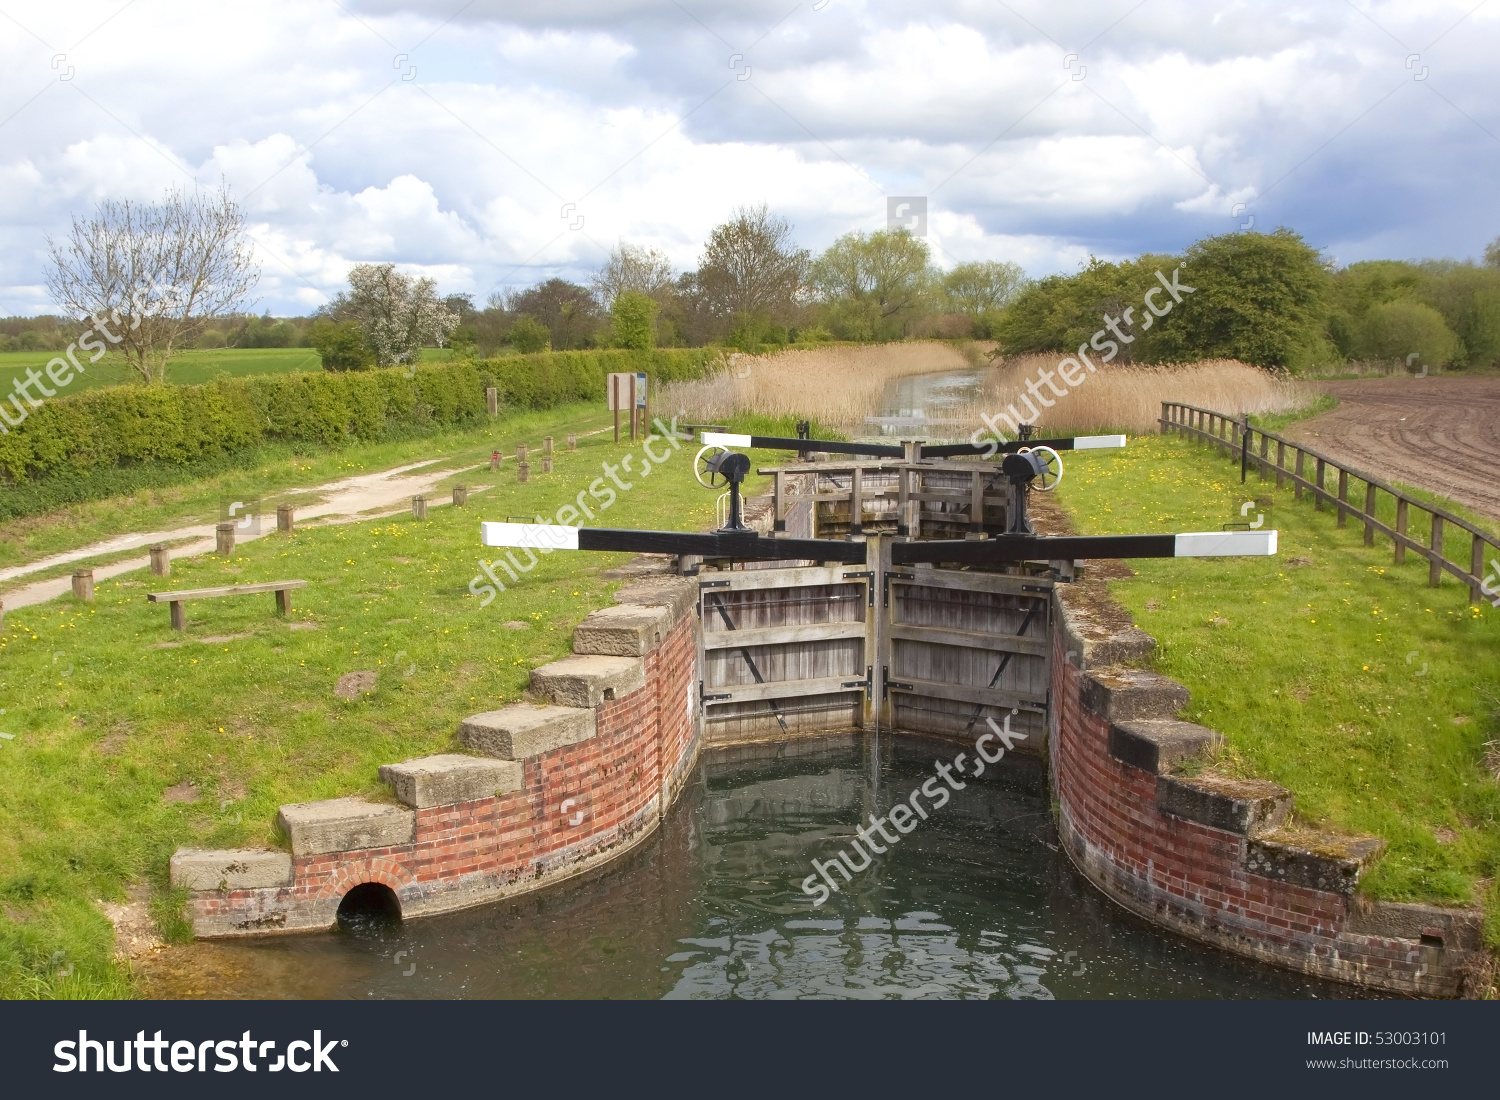 Traditional Wooden Sluice Gates Controlling Land Stock Photo.